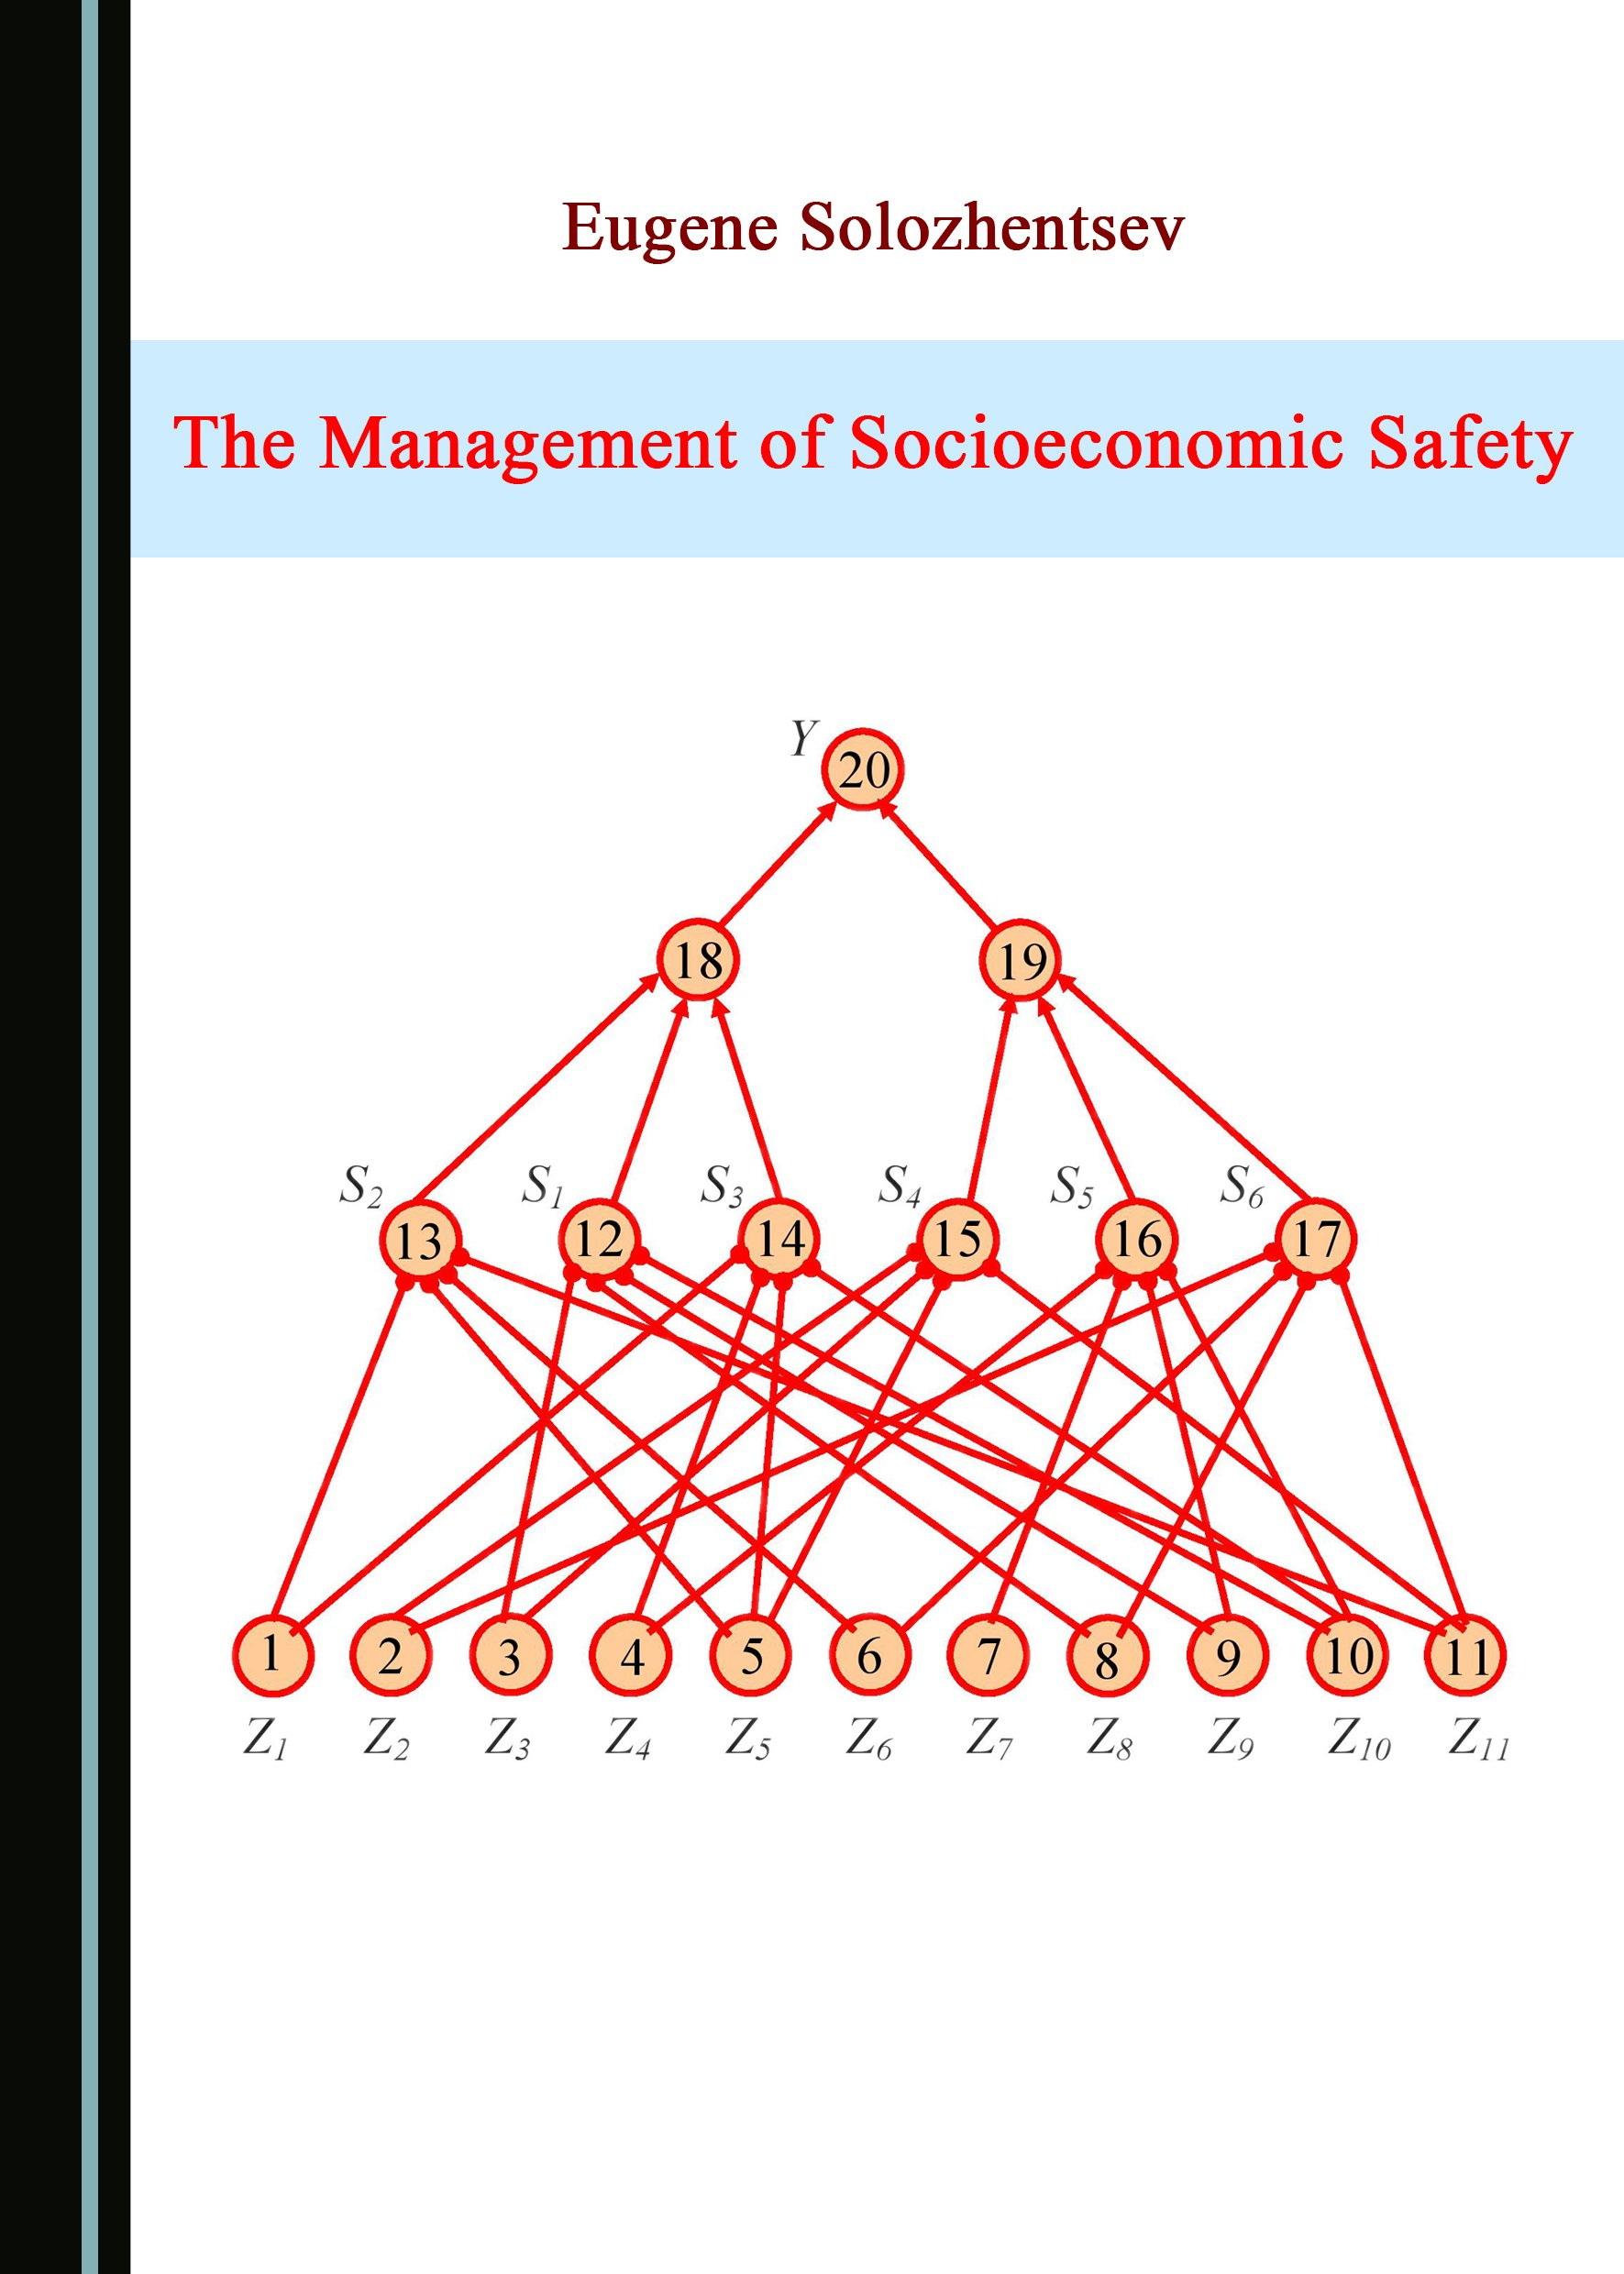 The Management of Socioeconomic Safety